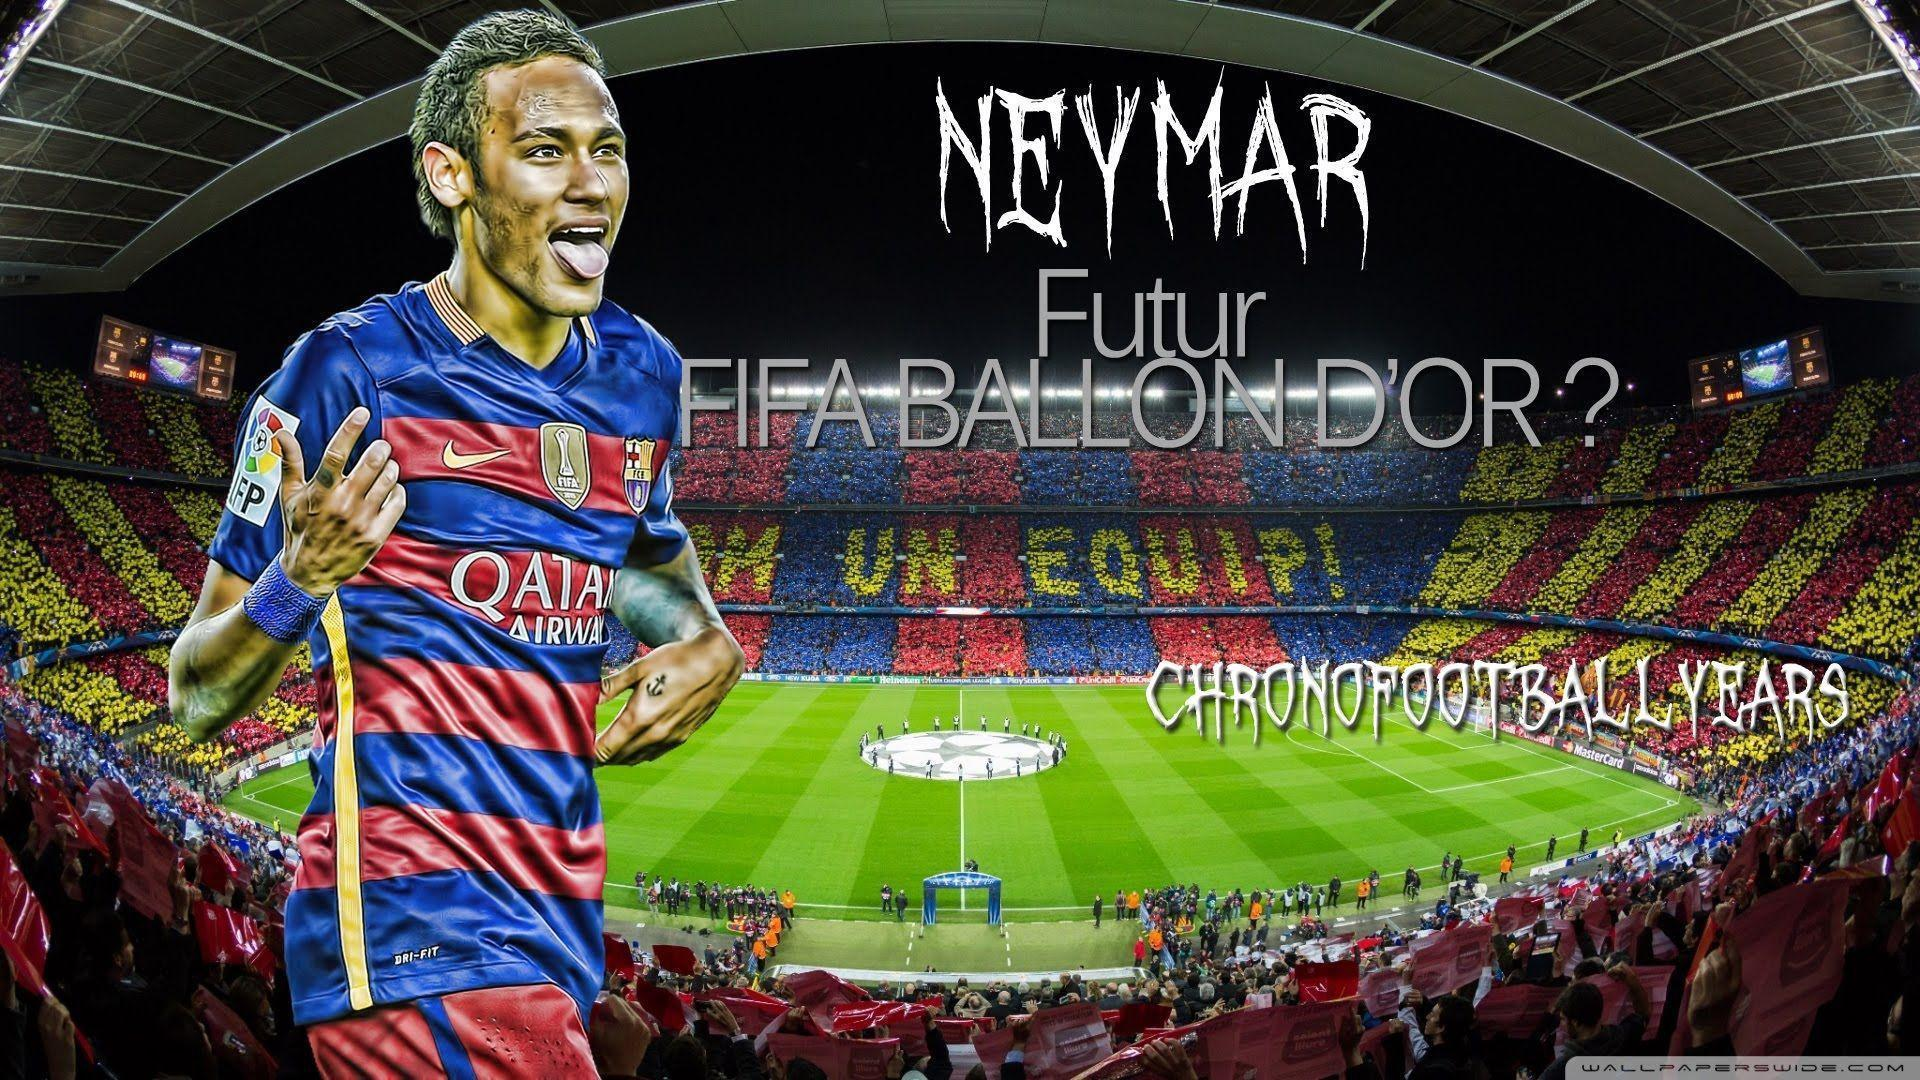 Neymar Fifa Ballon Dor  Youtube